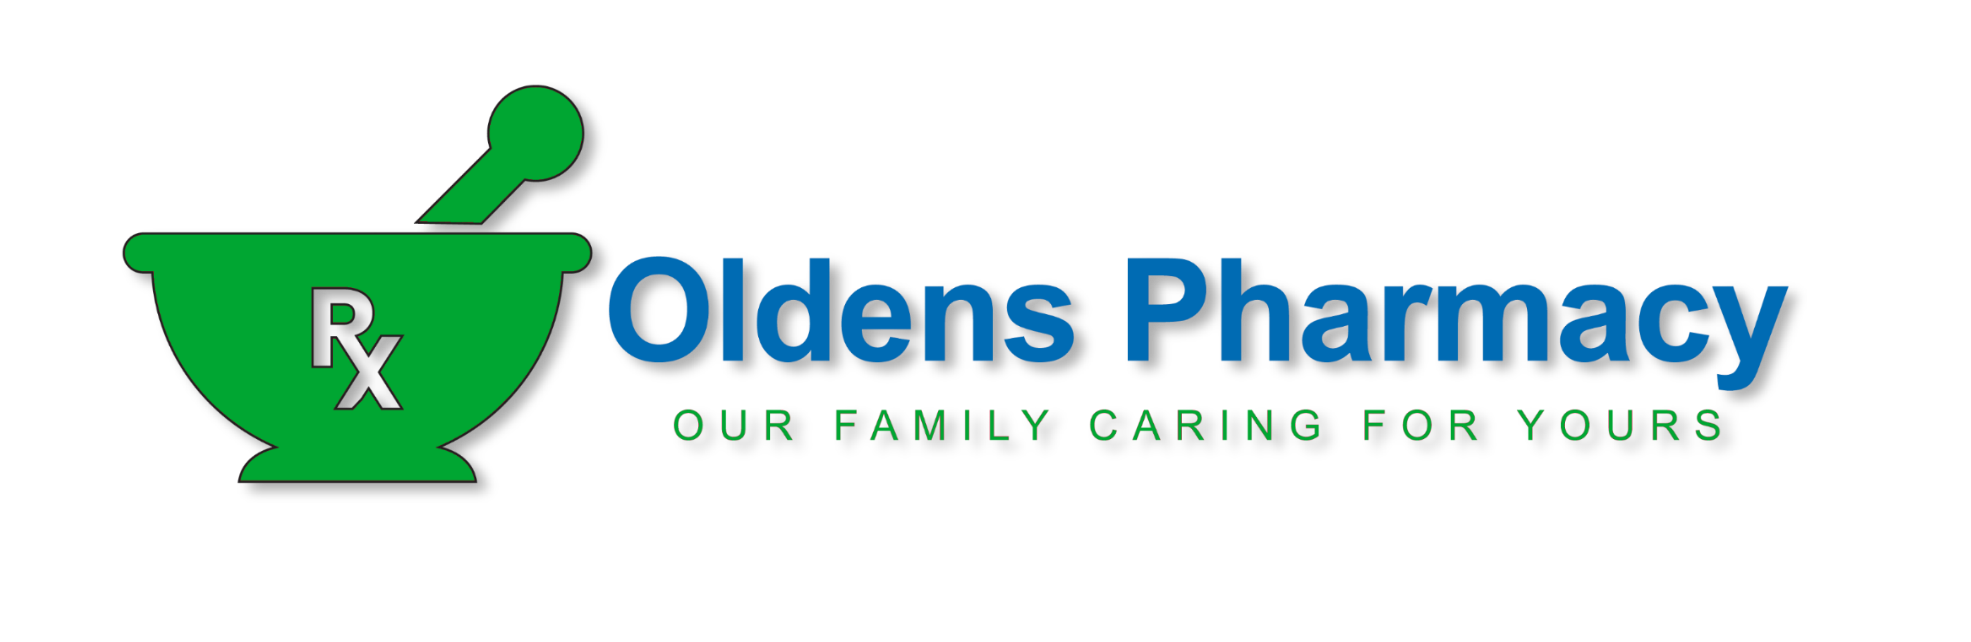 Oldens Pharmacy